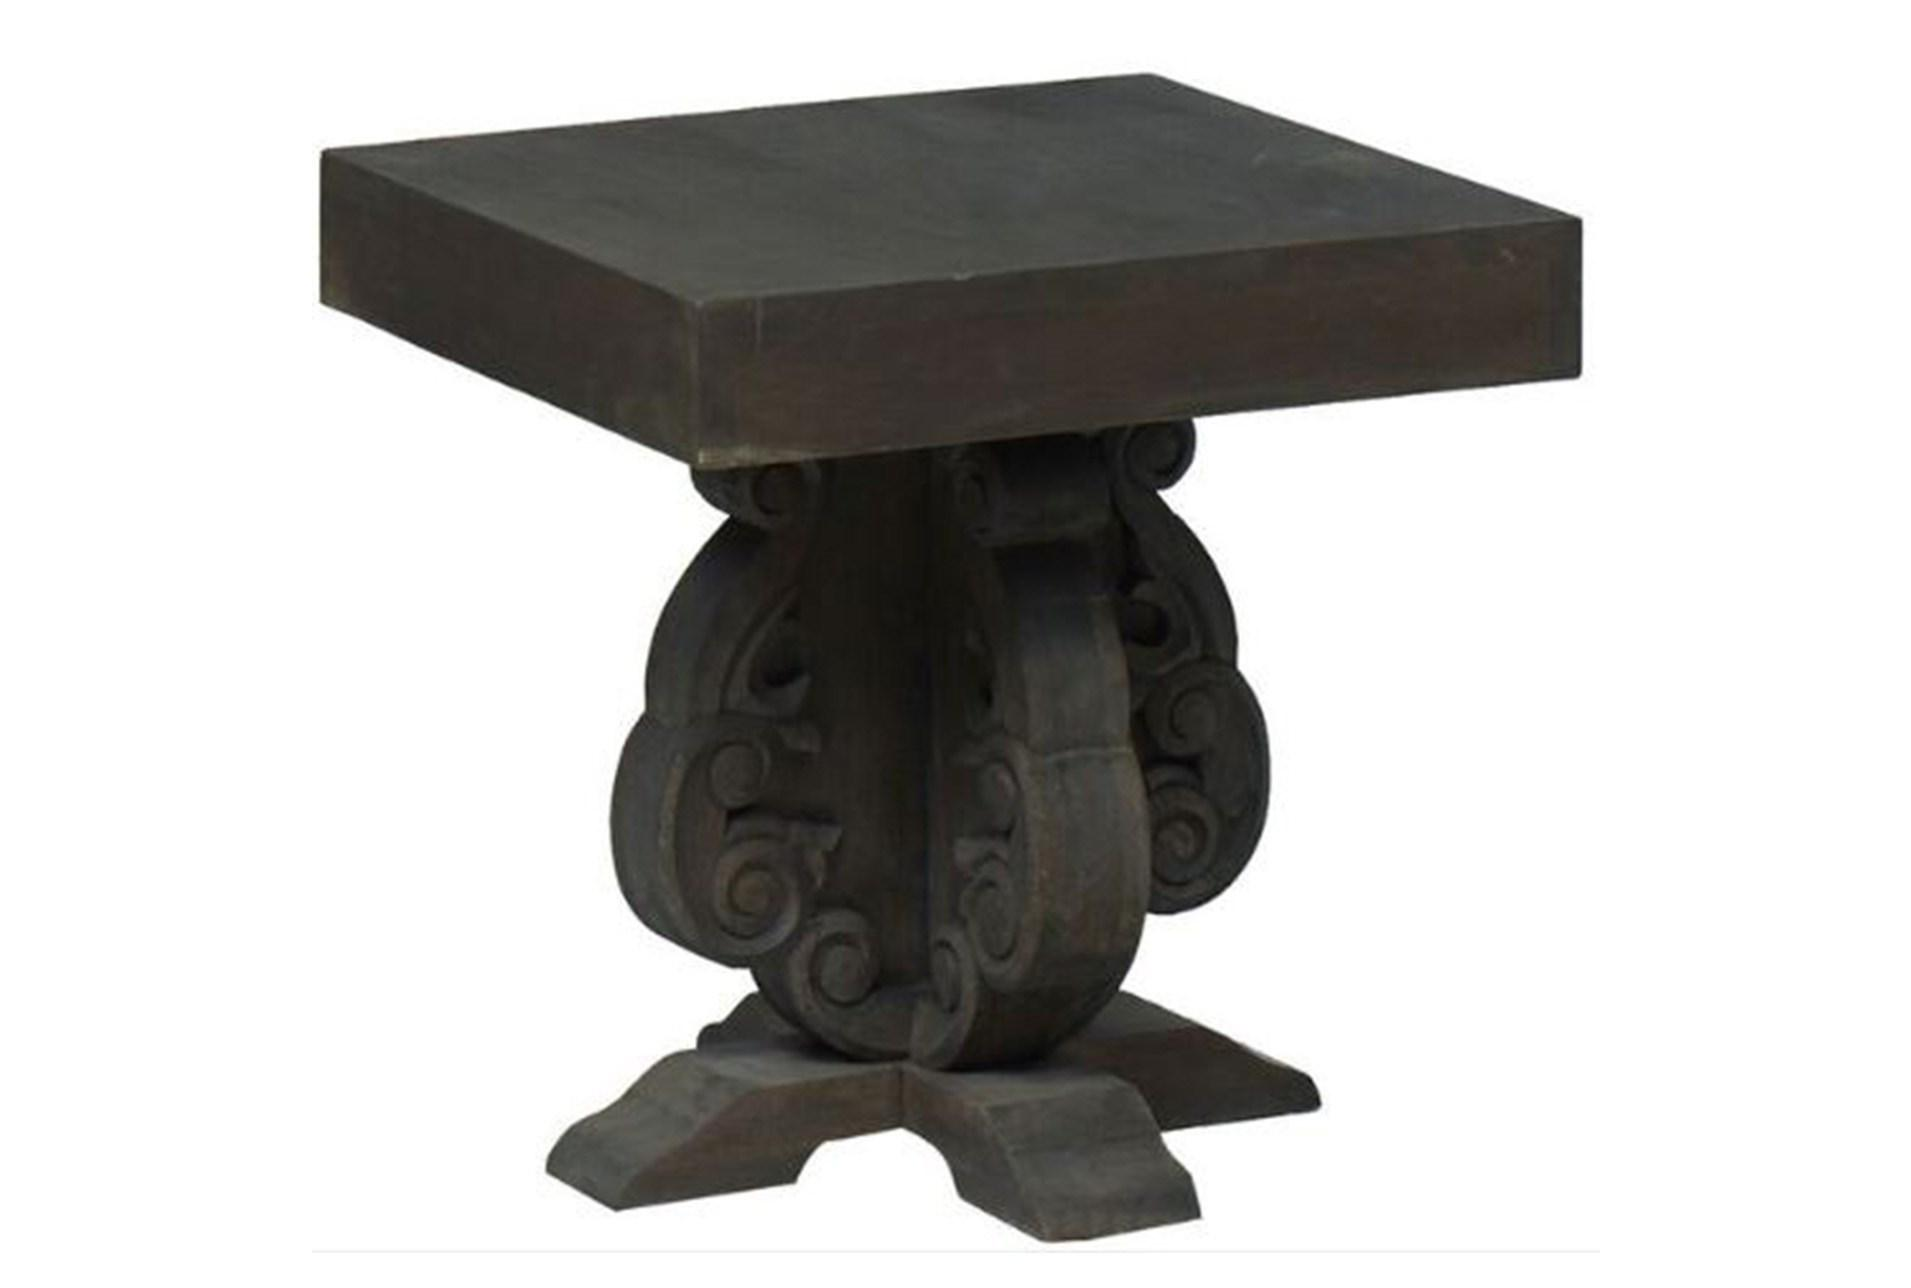 masonry accent table living spaces grey wood carved large view antique looking end tables stacking target agate navy blue side hardwood white round mid century modern dining